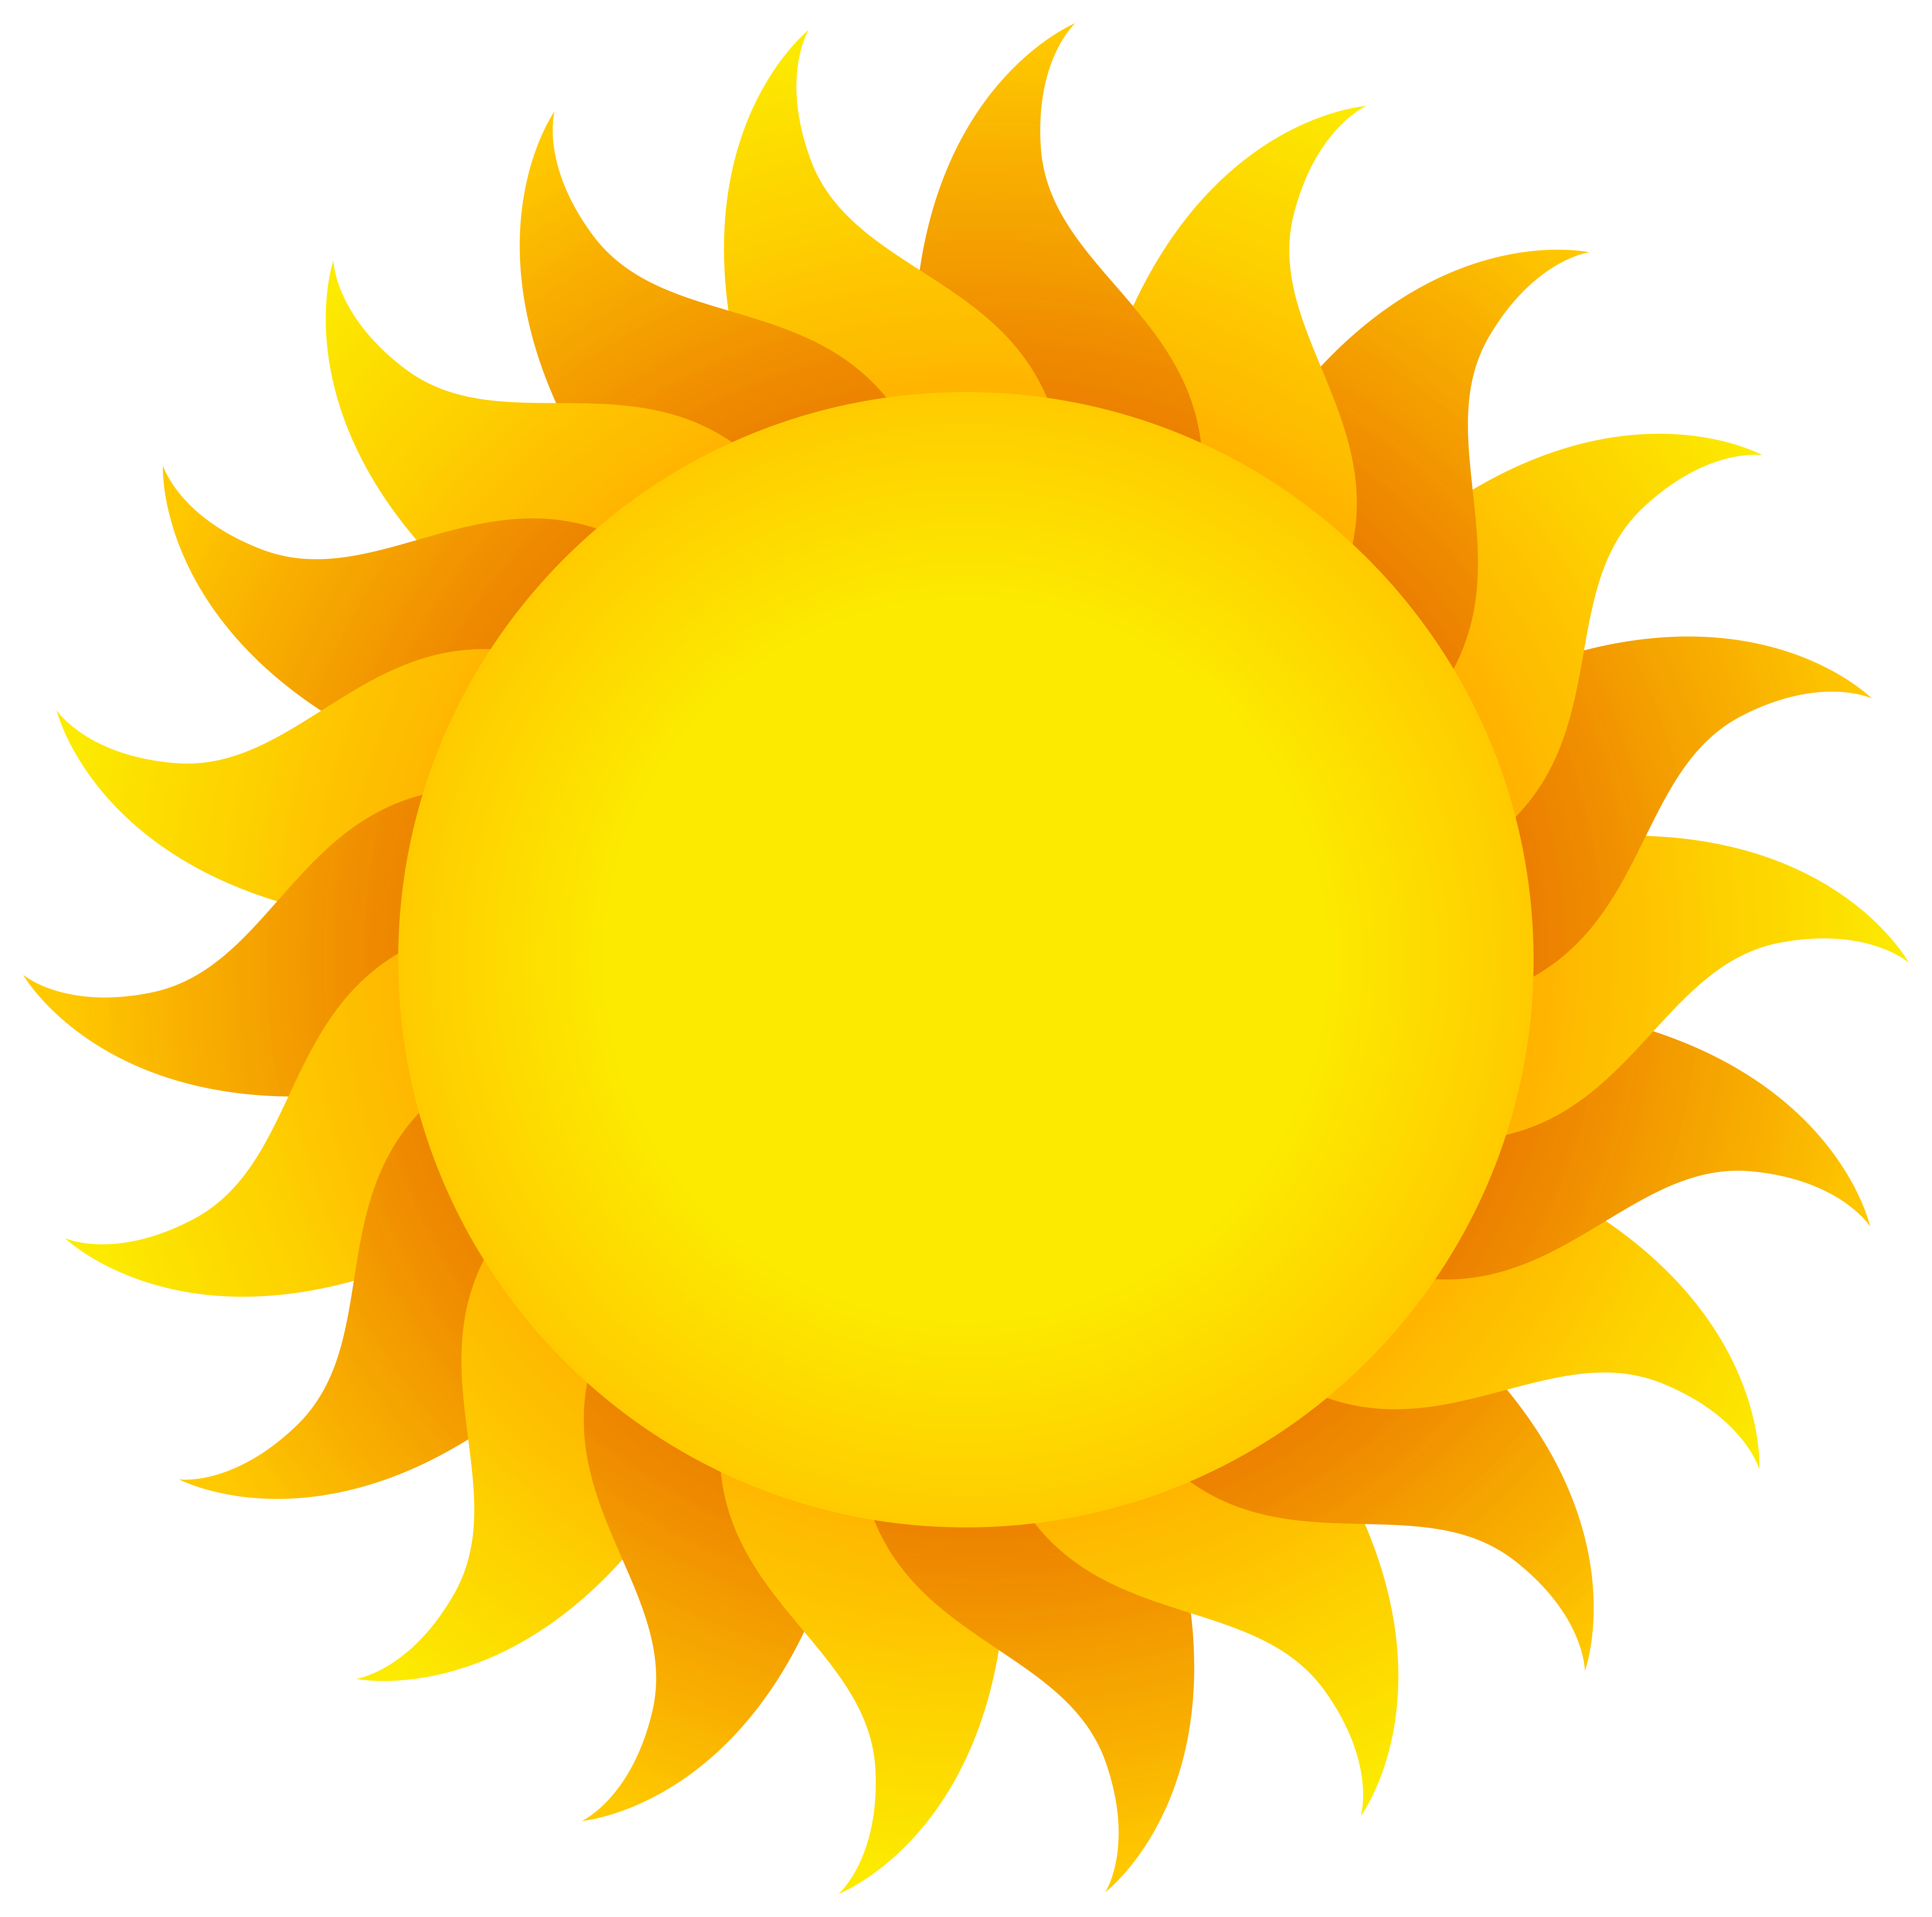 Sun PNG Clear Background